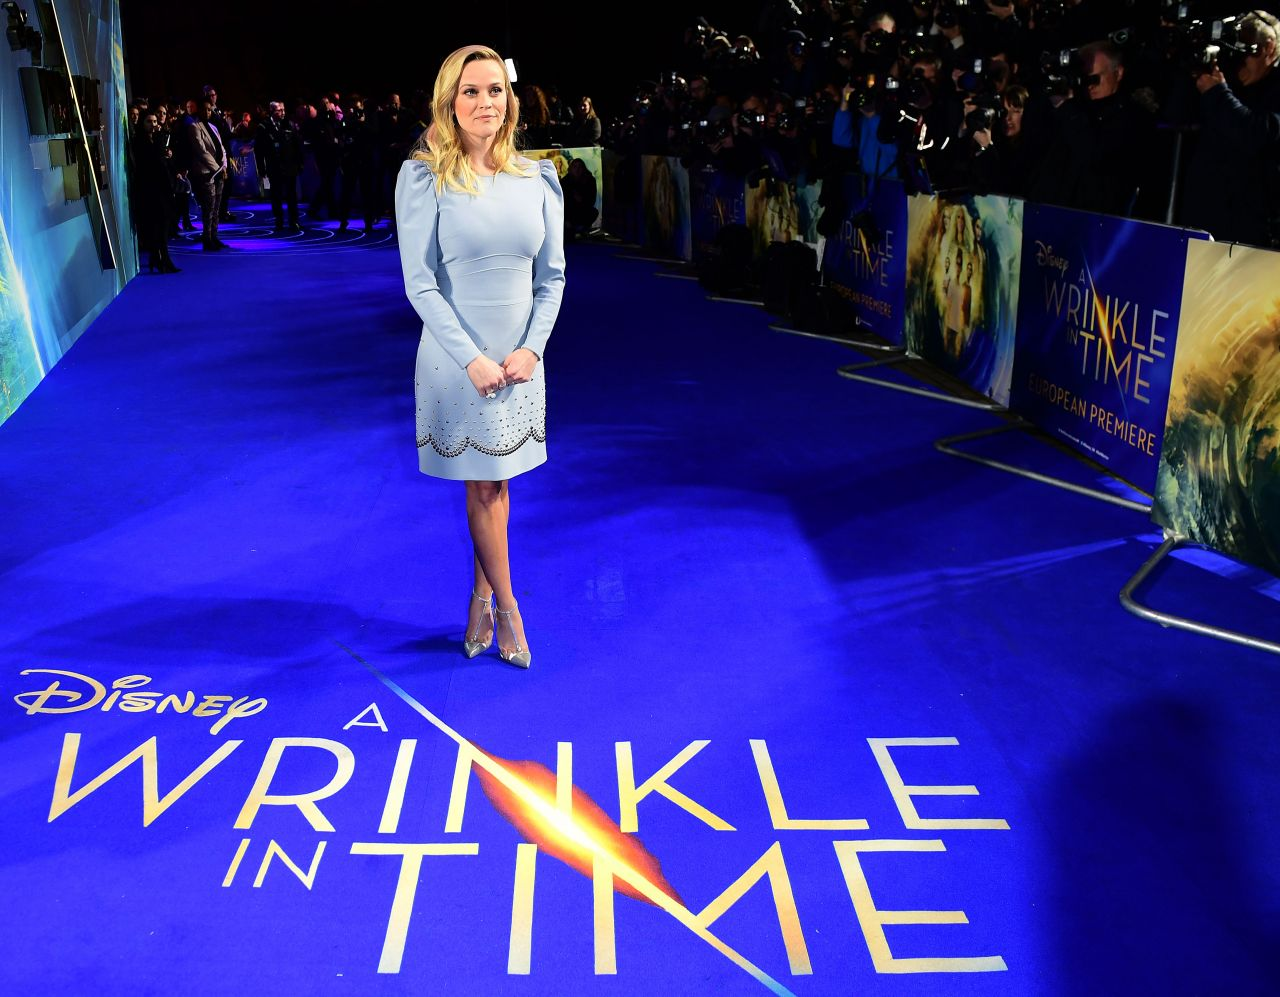 http://celebmafia.com/wp-content/uploads/2018/03/reese-witherspoon-a-wrinkle-in-time-premiere-in-london-1.jpg